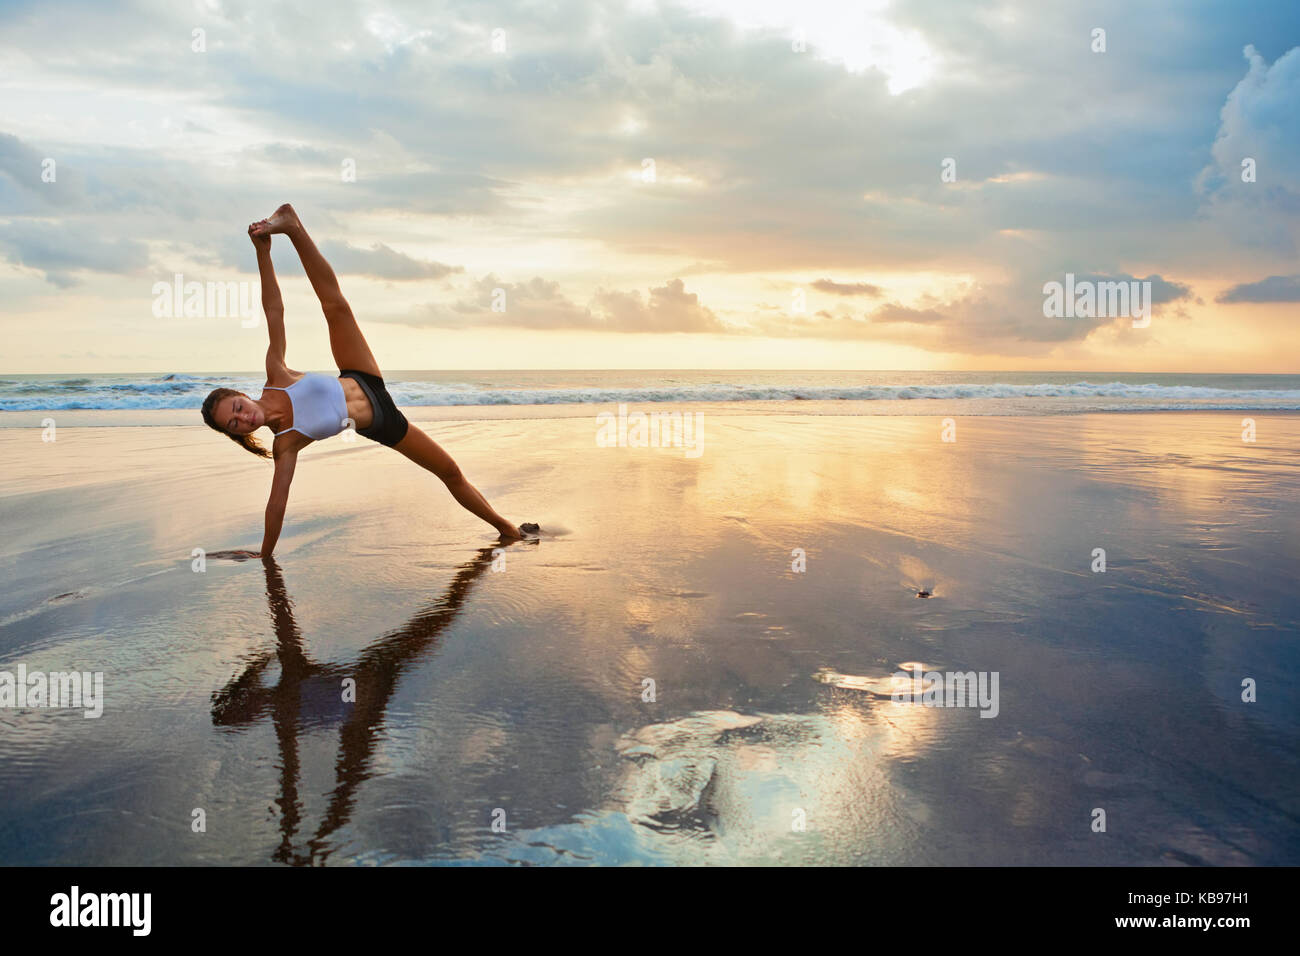 Meditation on sunset sky background. Young active woman in yoga pose on sea beach, stretching to keep fit, health. - Stock Image